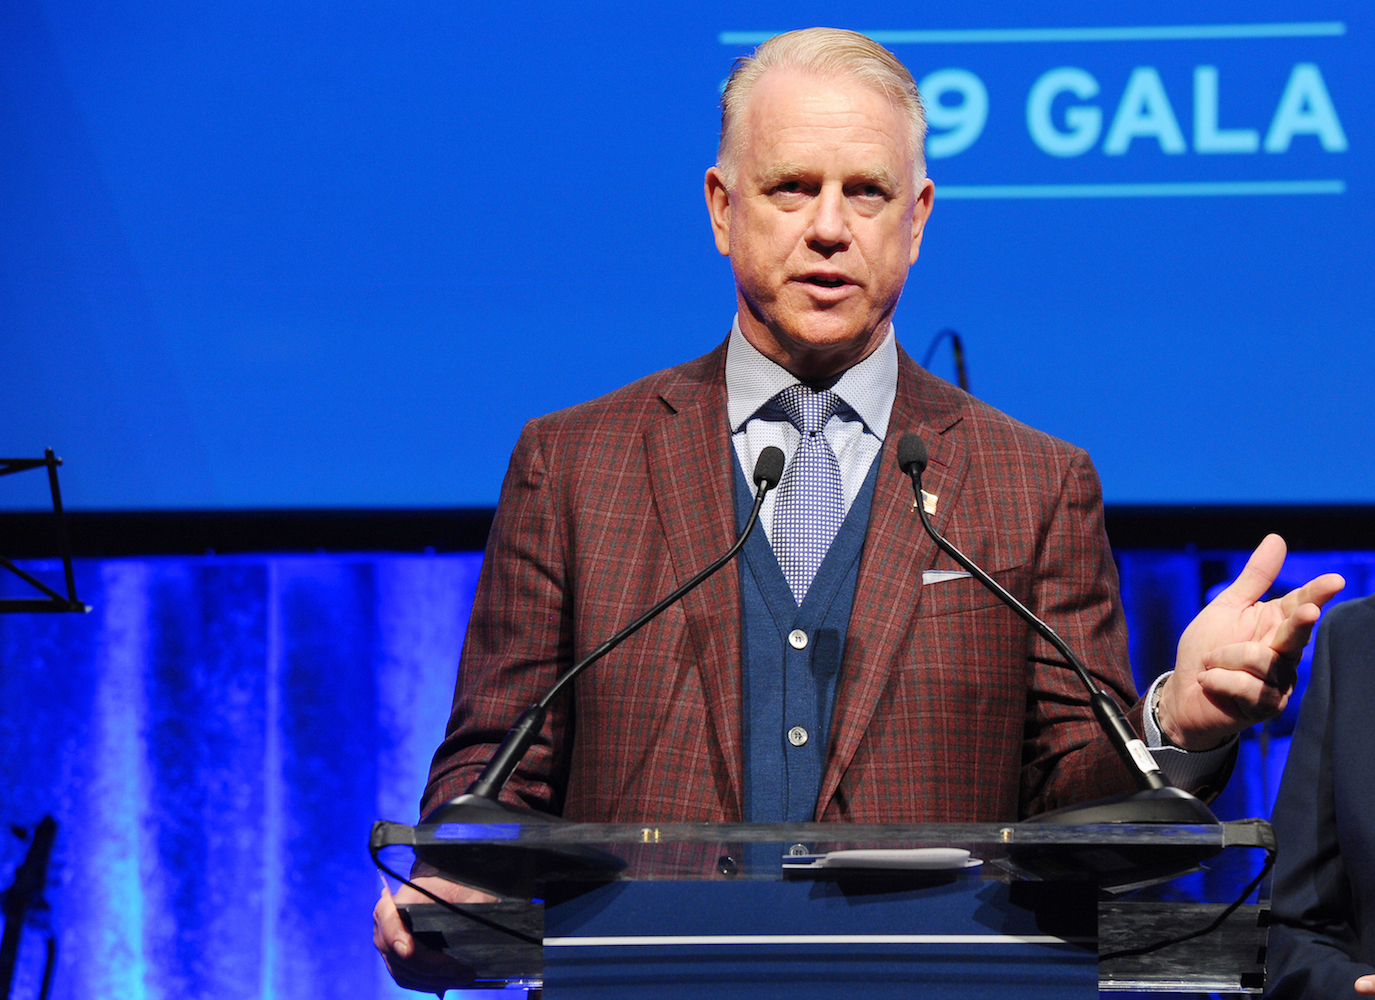 Boomer Esiason's nickname has nothing to do with his athletic abilities.